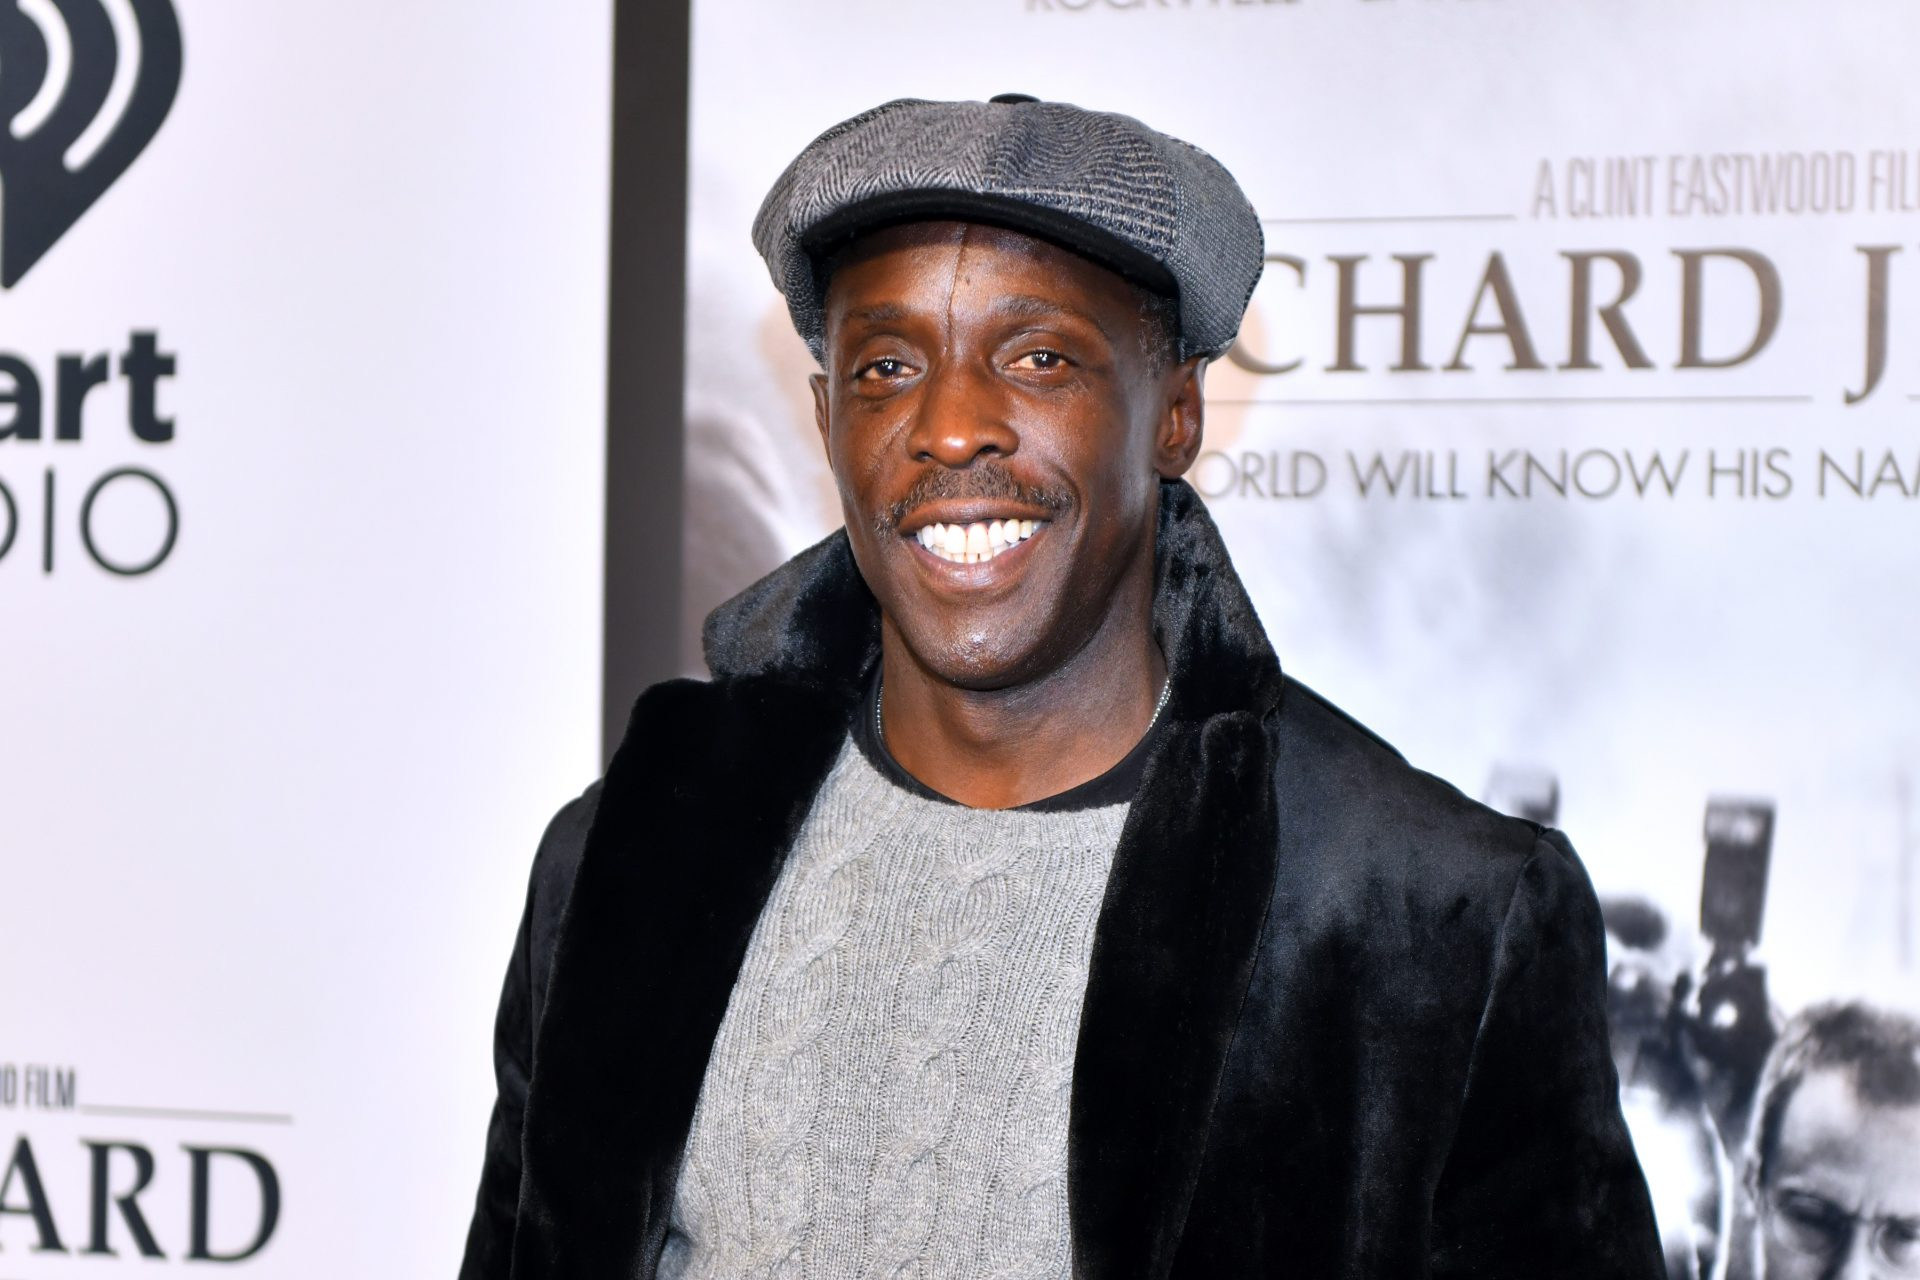 Photos: Remembering actor Michael K. Williams after his shocking death, age 54